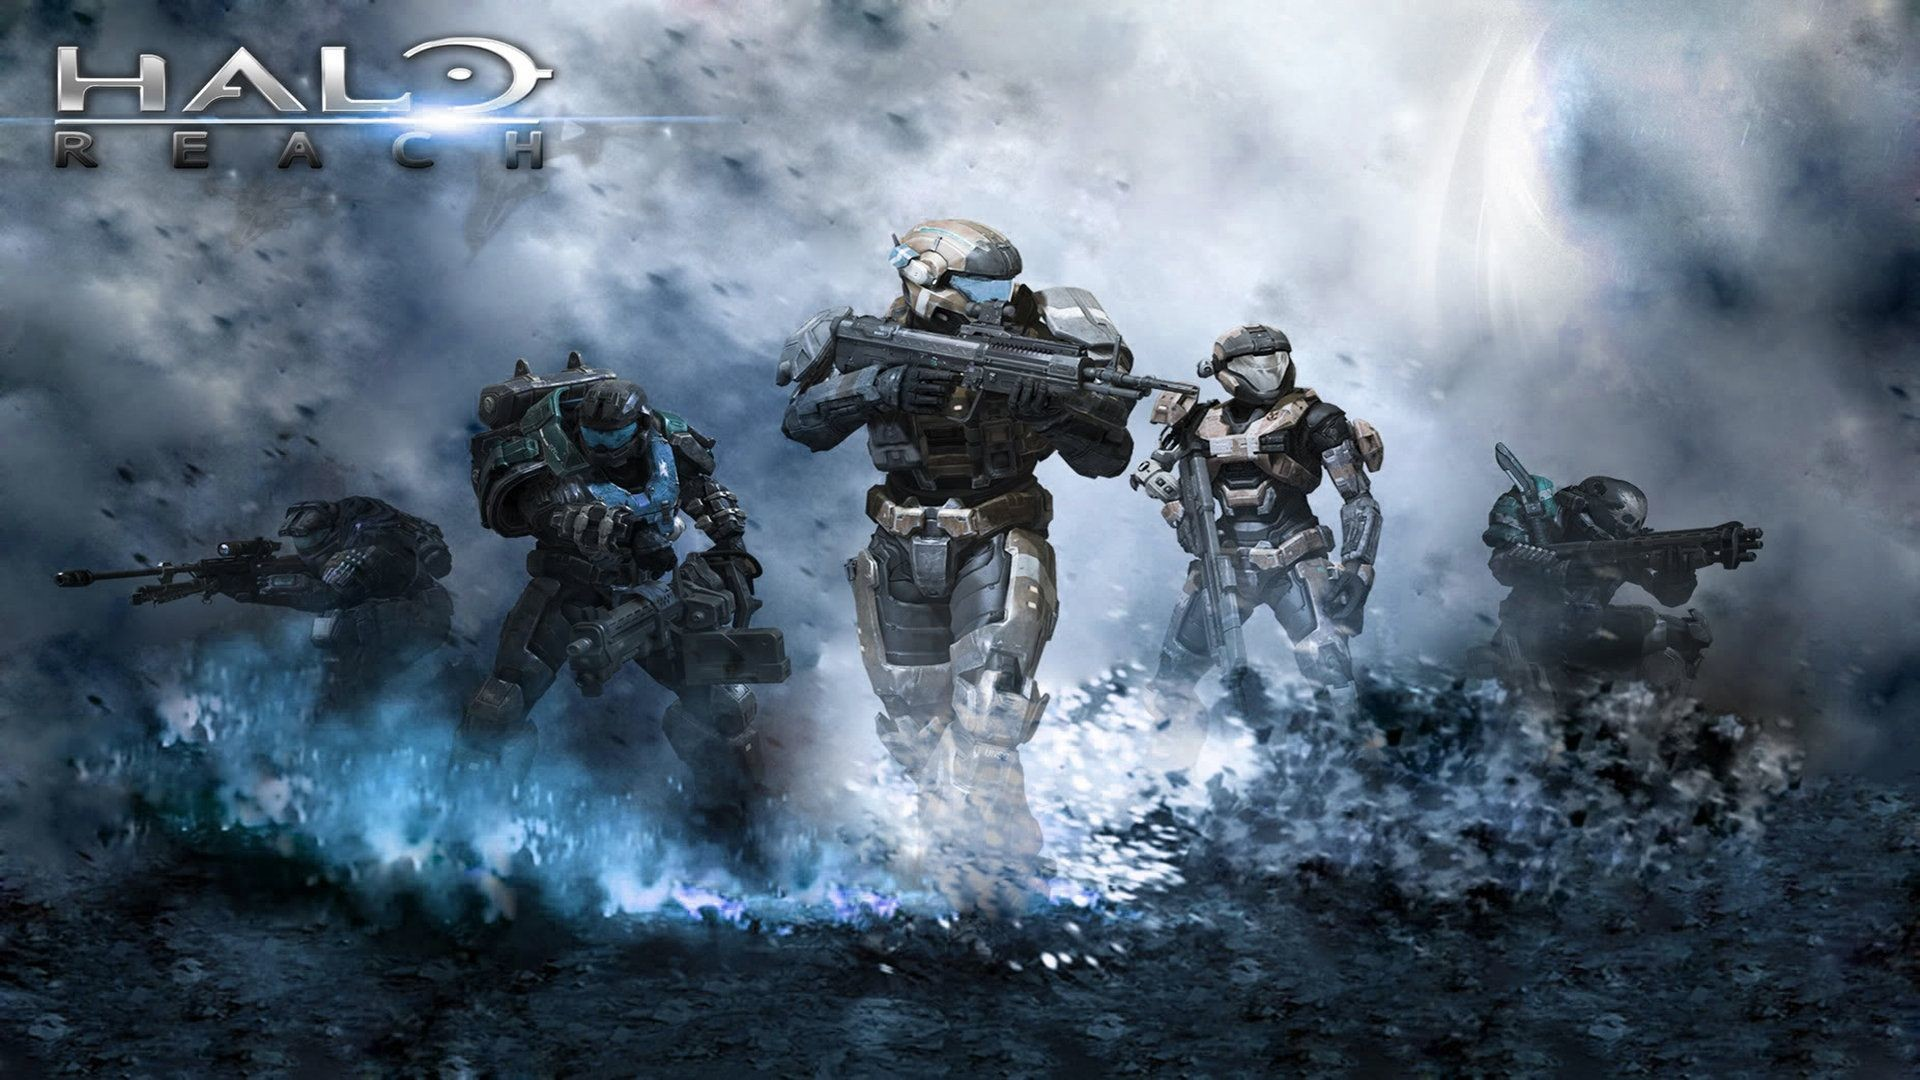 Halo HD Wallpapers Backgrounds Wallpaper 1920×1200 Halo Wallpaper Hd (37  Wallpapers) |